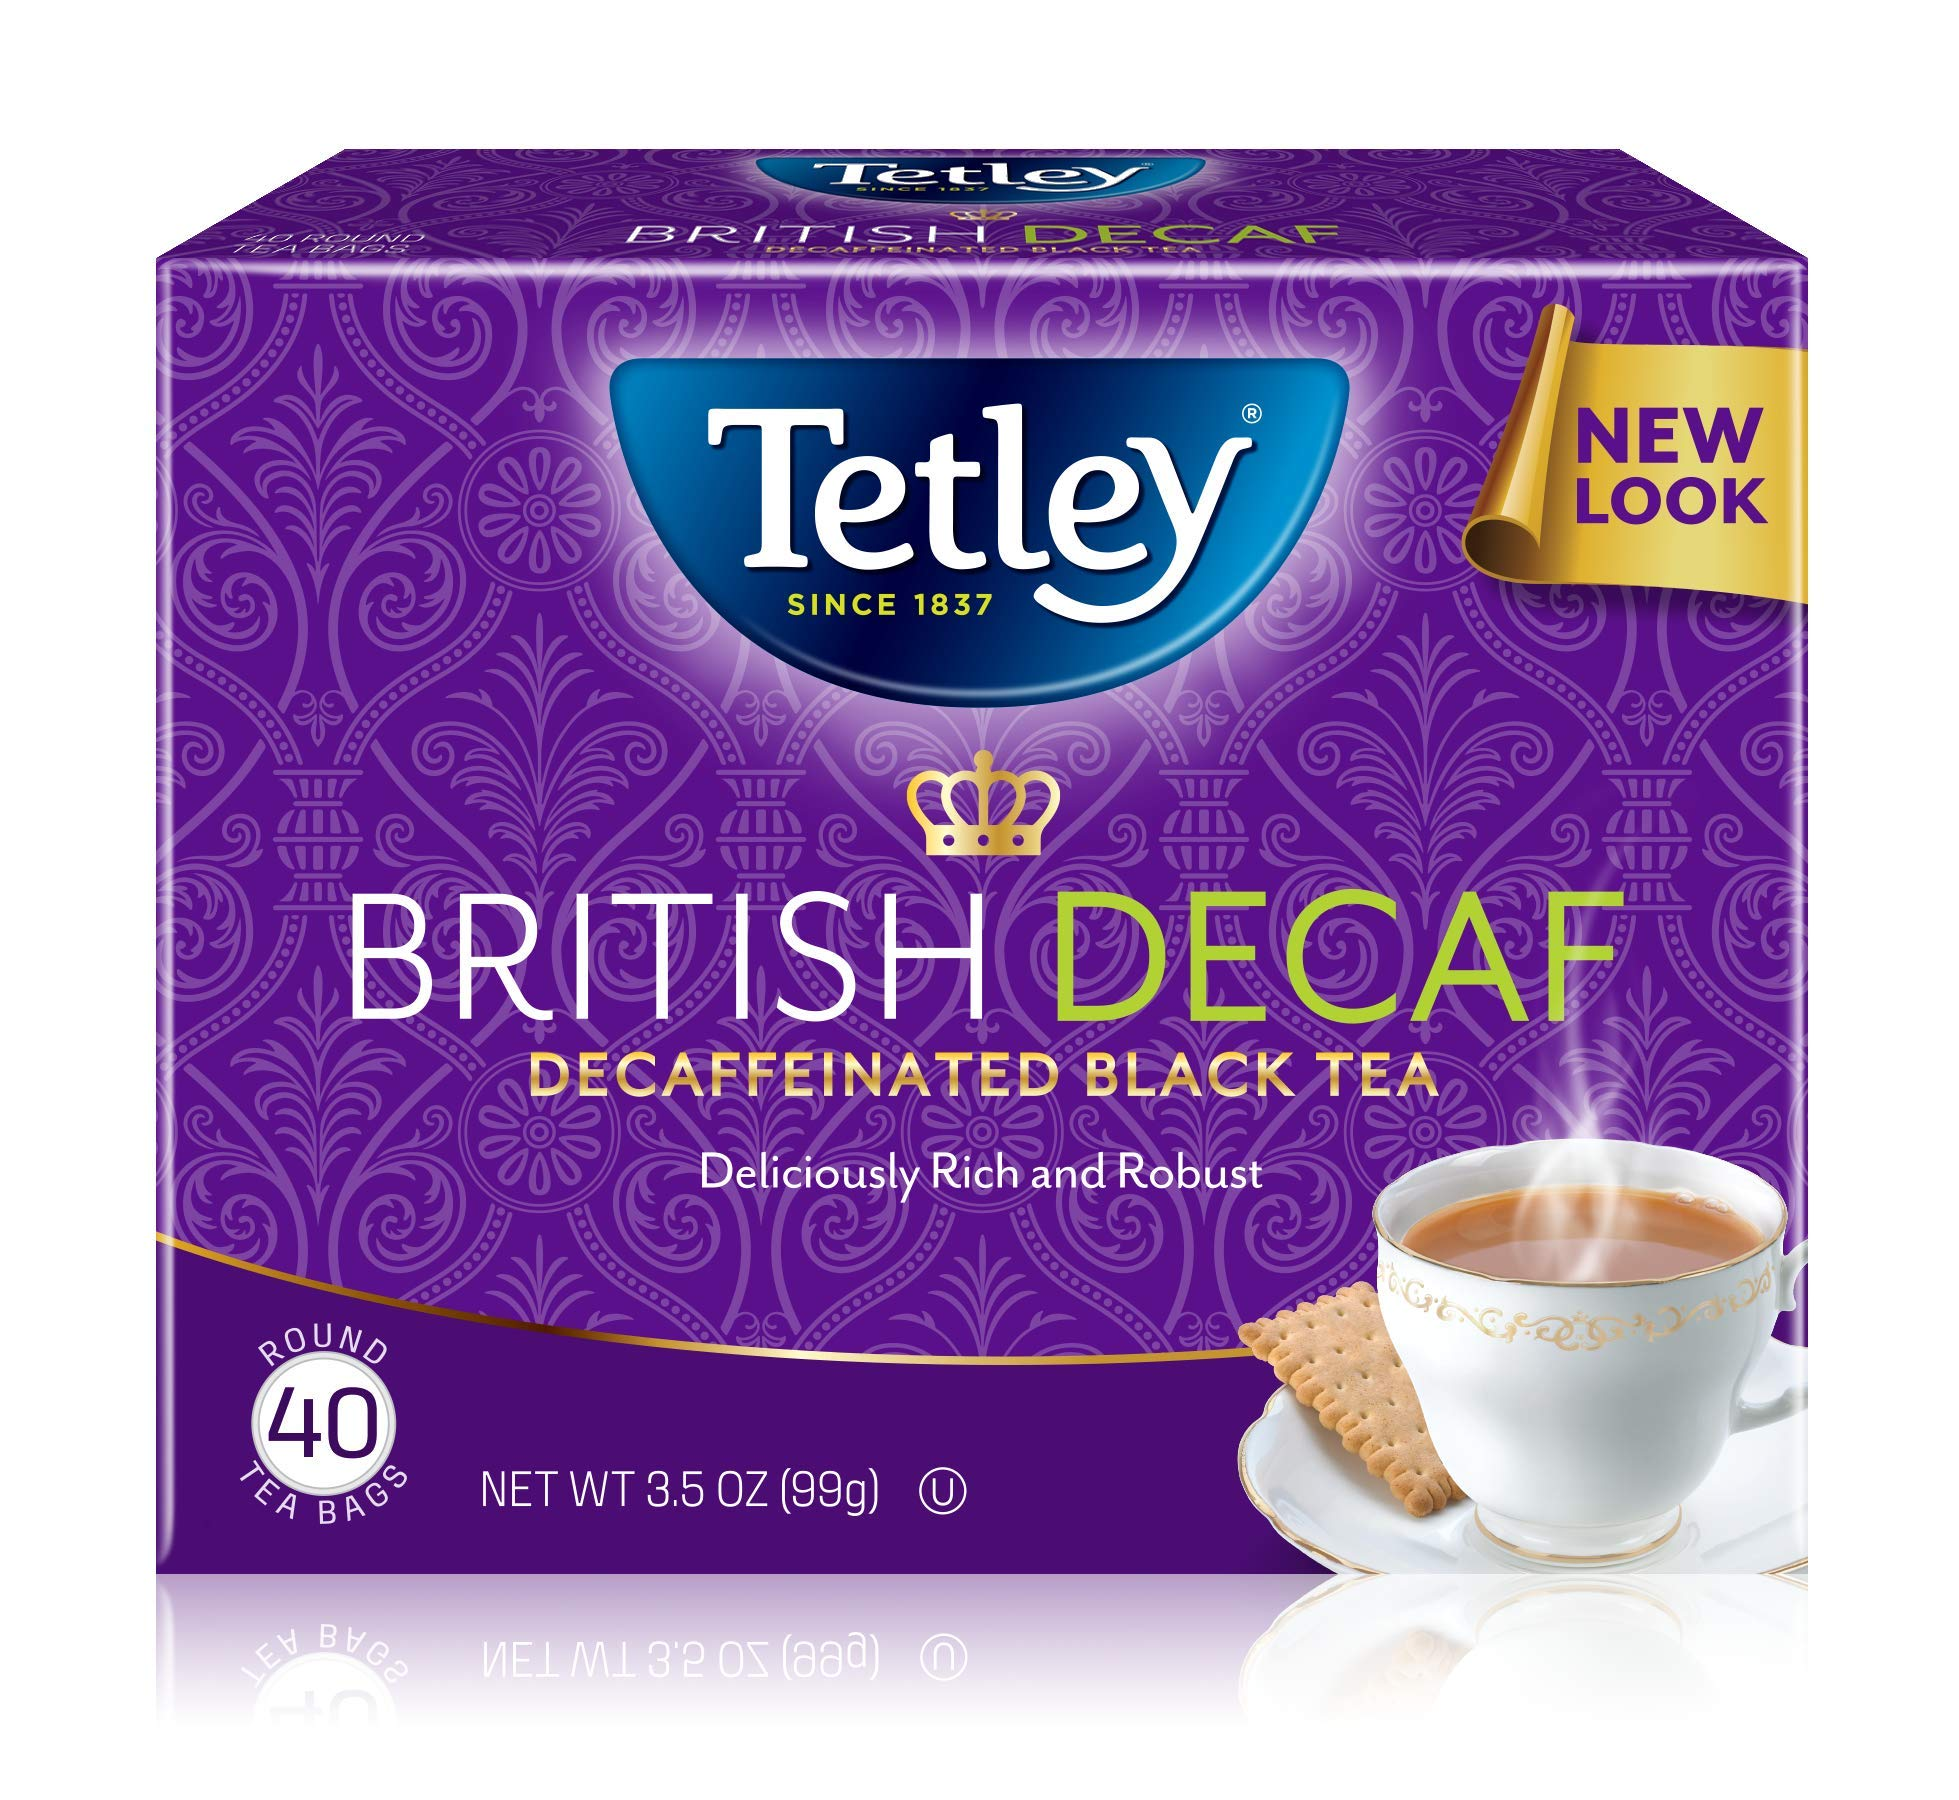 Tetley Premium Black Tea, Decaffeinated British Blend, 40 Tea Bags (Pack of 6) by Tetley